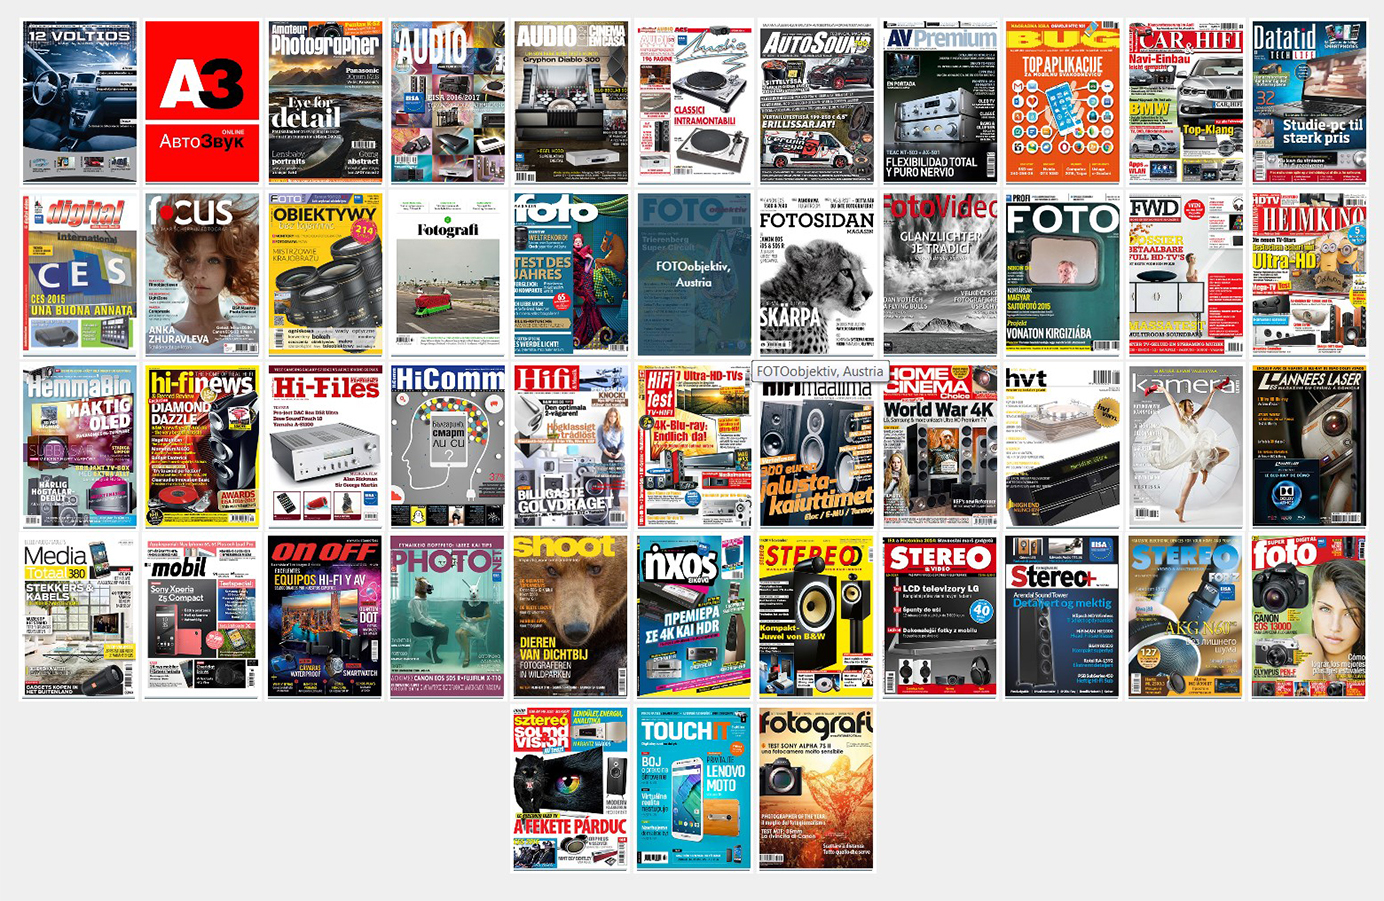 EISA 2016 - 2017 - Magazines Membres (sources : EISA)